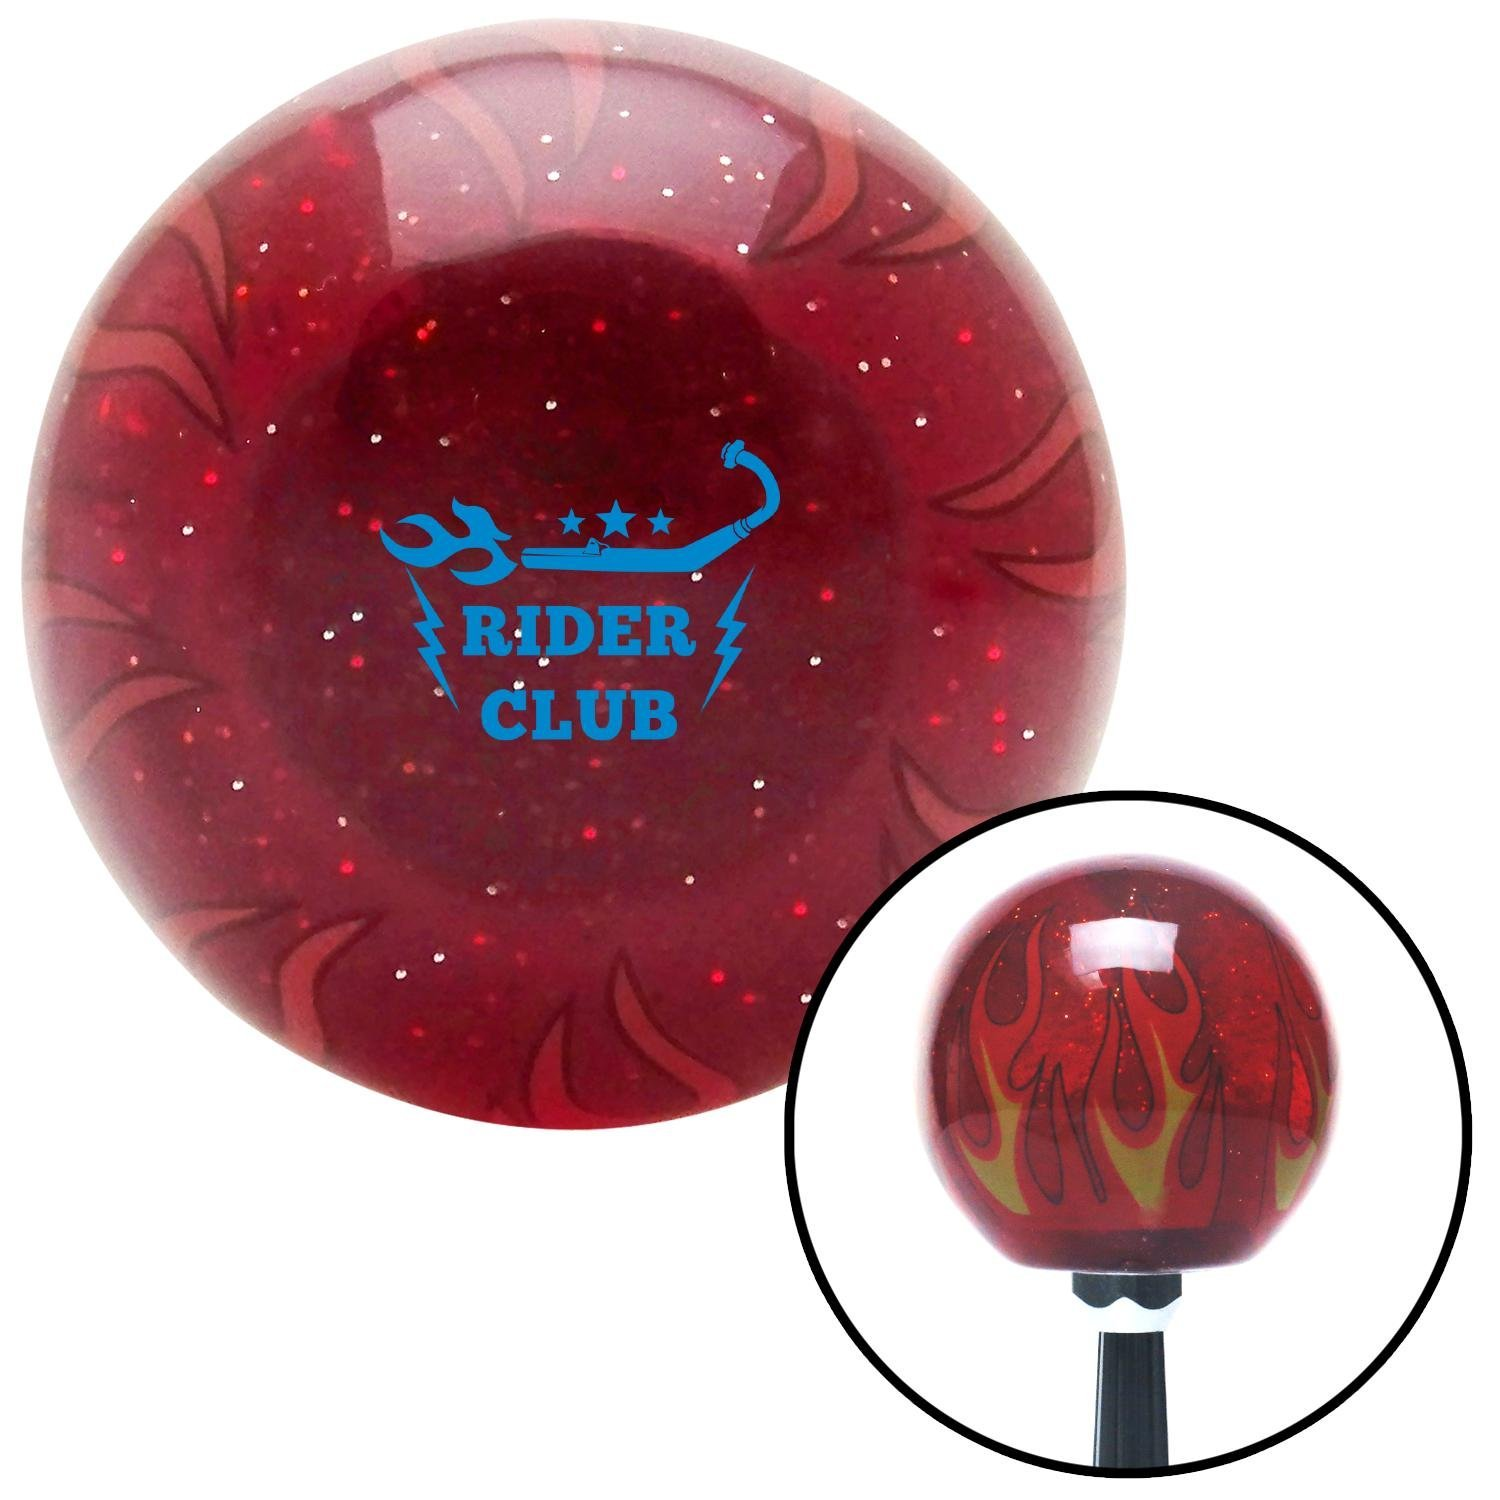 American Shifter 296952 Shift Knob Blue Rider Club Red Flame Metal Flake with M16 x 1.5 Insert